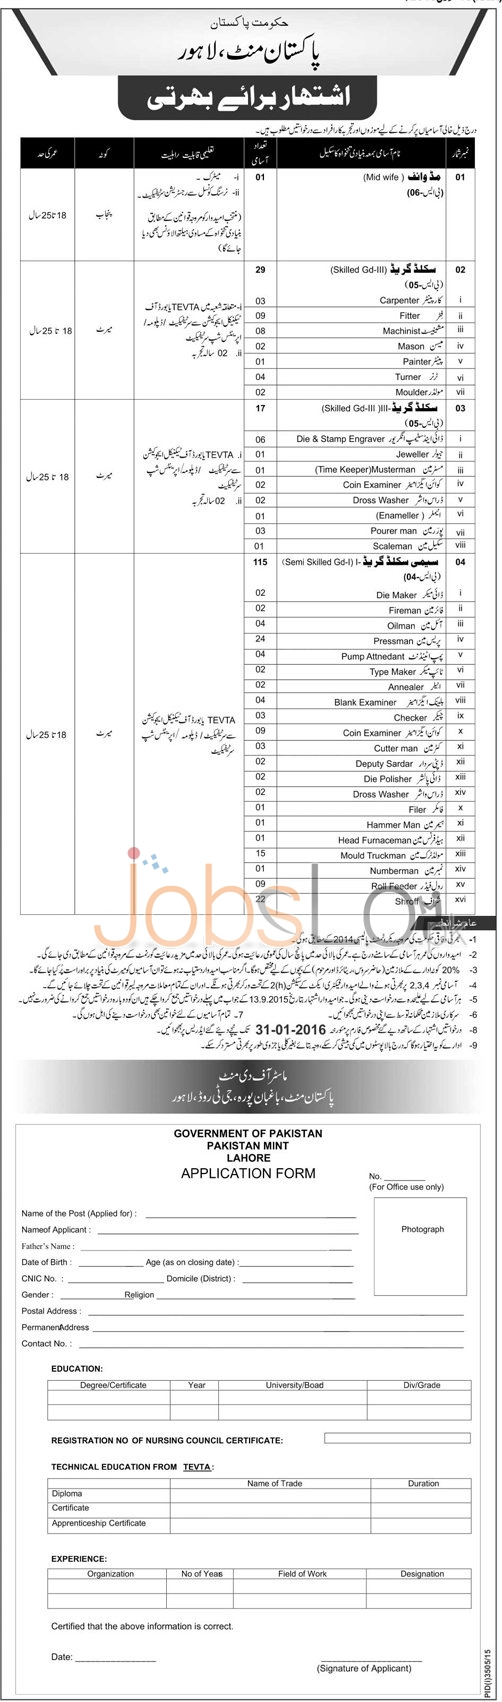 Pakistan Mint Lahore Govt of Pakistan Jobs 2016